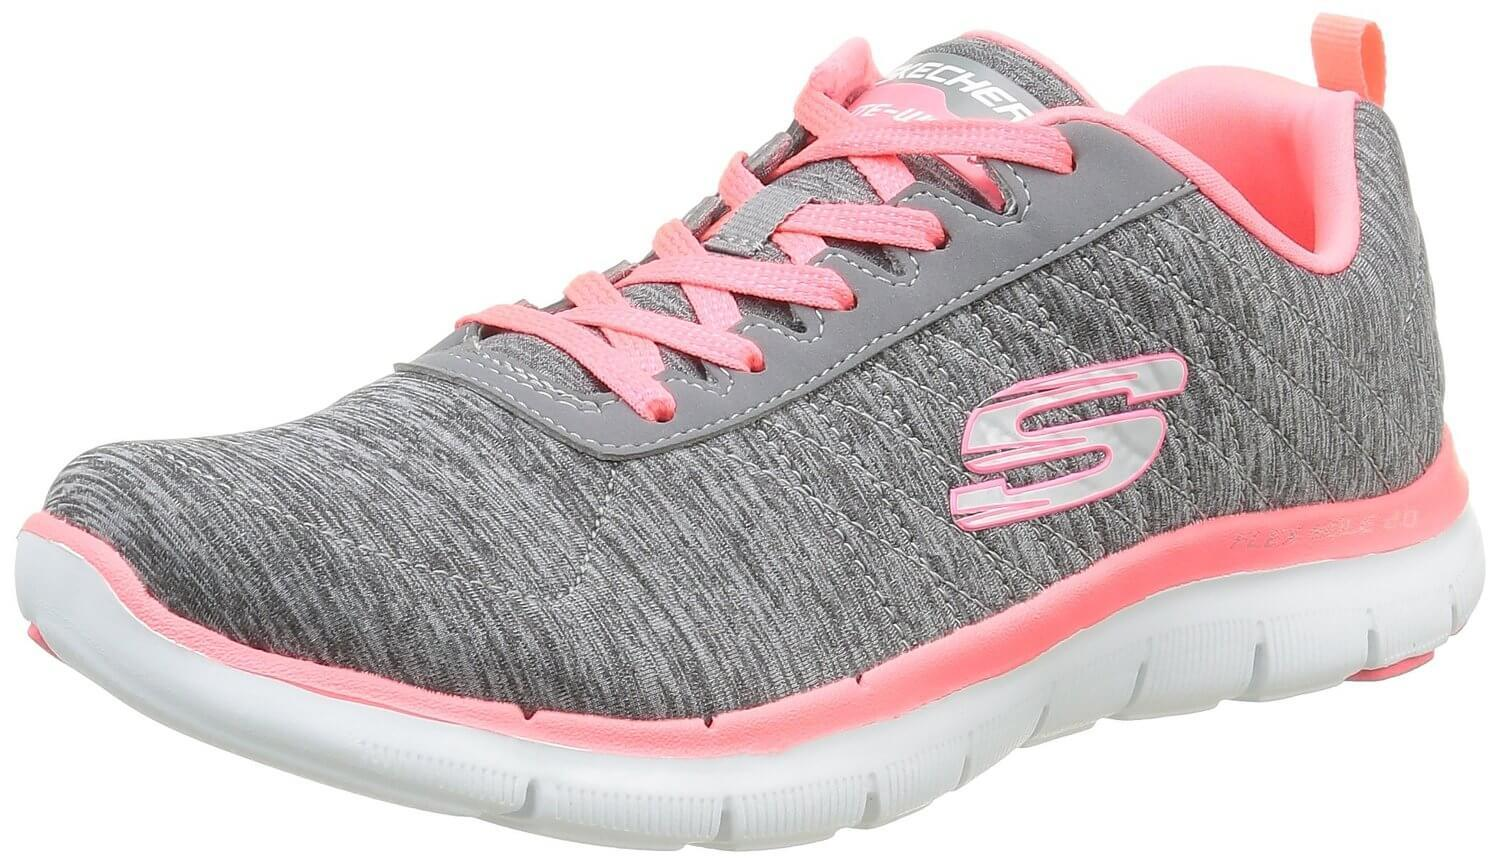 Skechers Memory Foam Womens Shoes Review